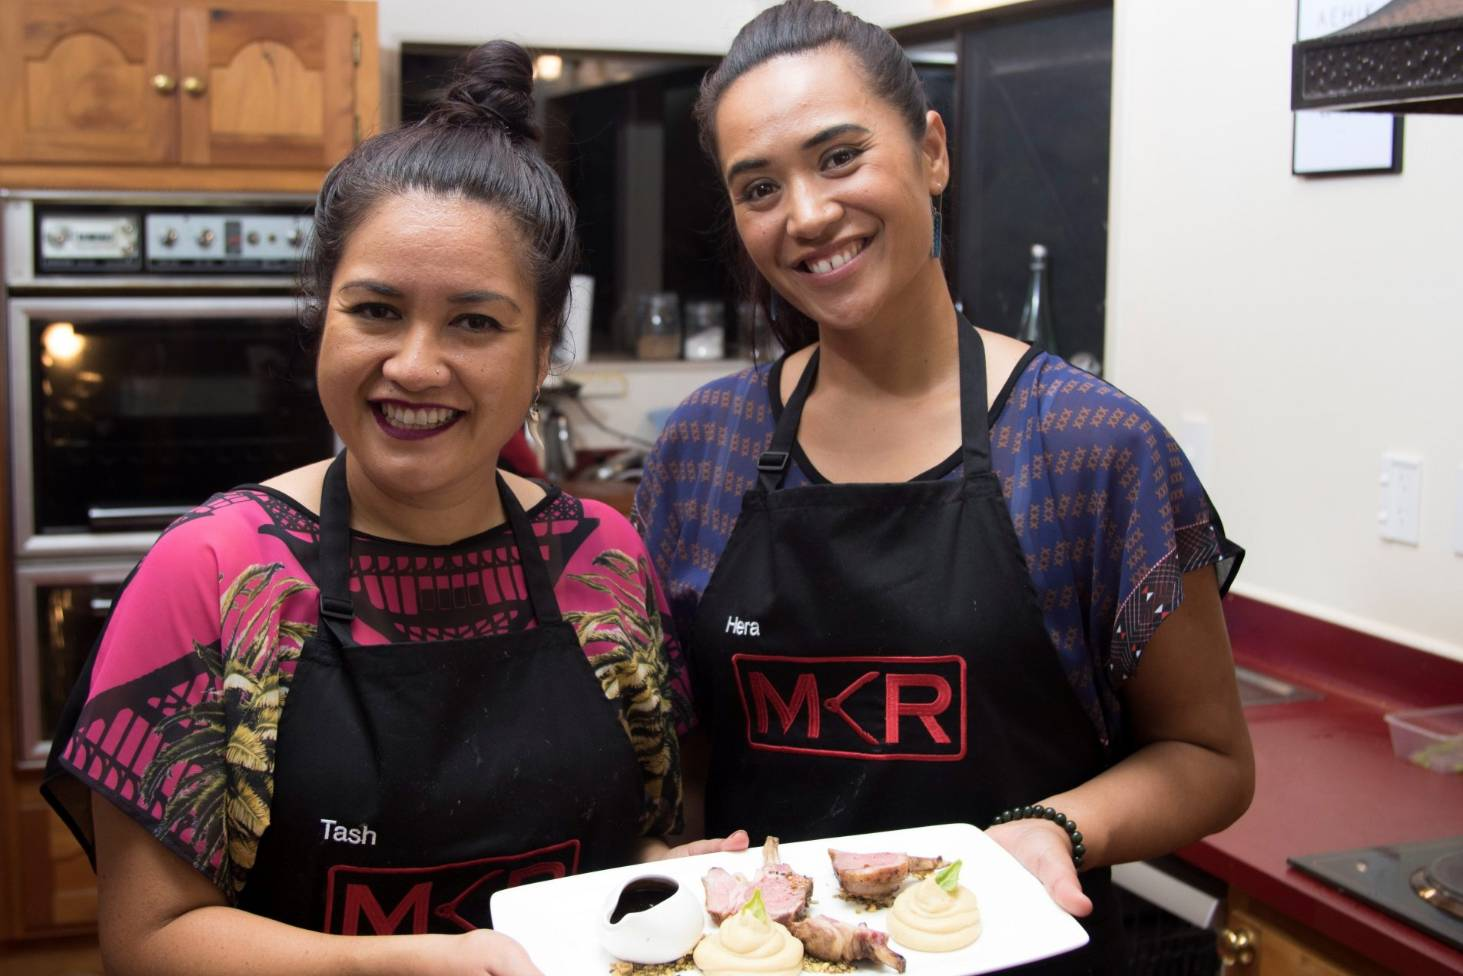 My kitchen rules contestants gracious in defeat but look to foodie future